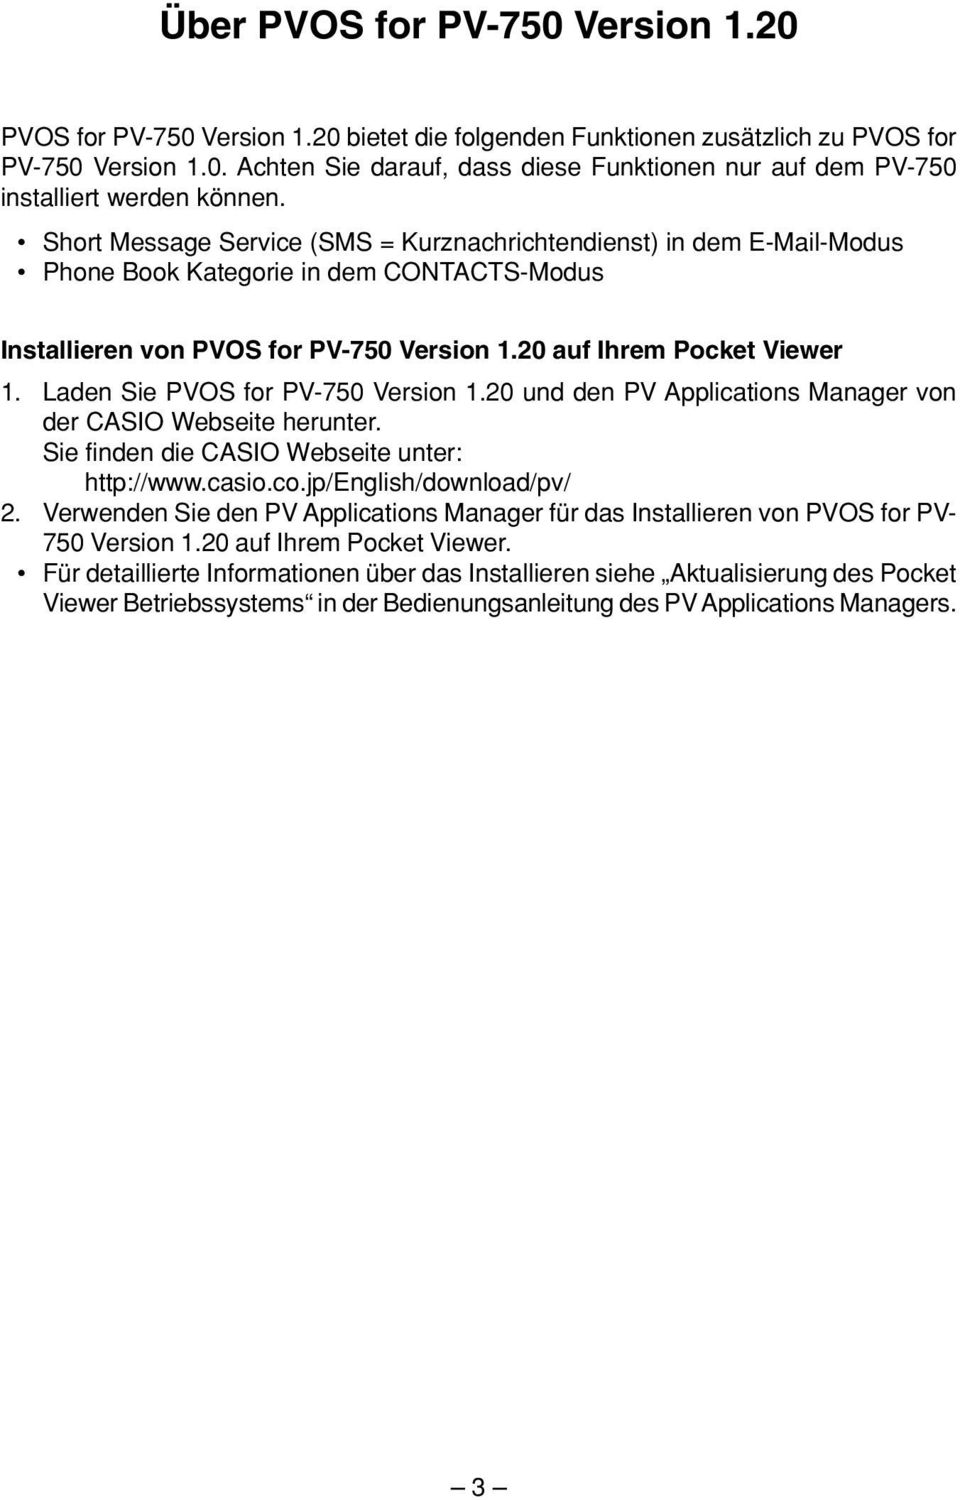 Laden Sie PVOS for PV-750 Version 1.20 und den PV Applications Manager von der CASIO Webseite herunter. Sie finden die CASIO Webseite unter: http://www.casio.co.jp/english/download/pv/ 2.